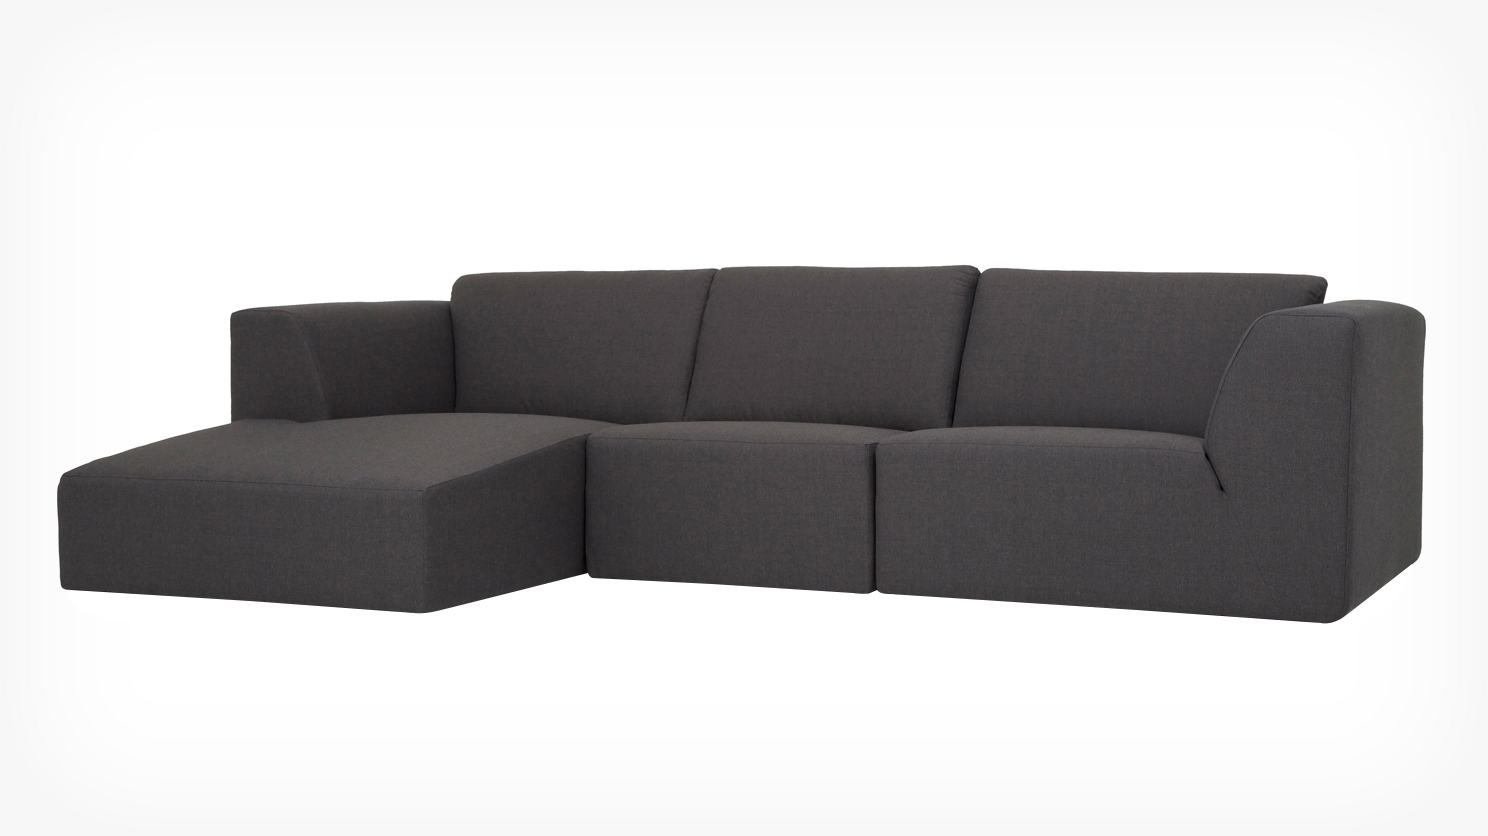 Eq3 | Living > Seating > Sectionals within Eq3 Sectional Sofas